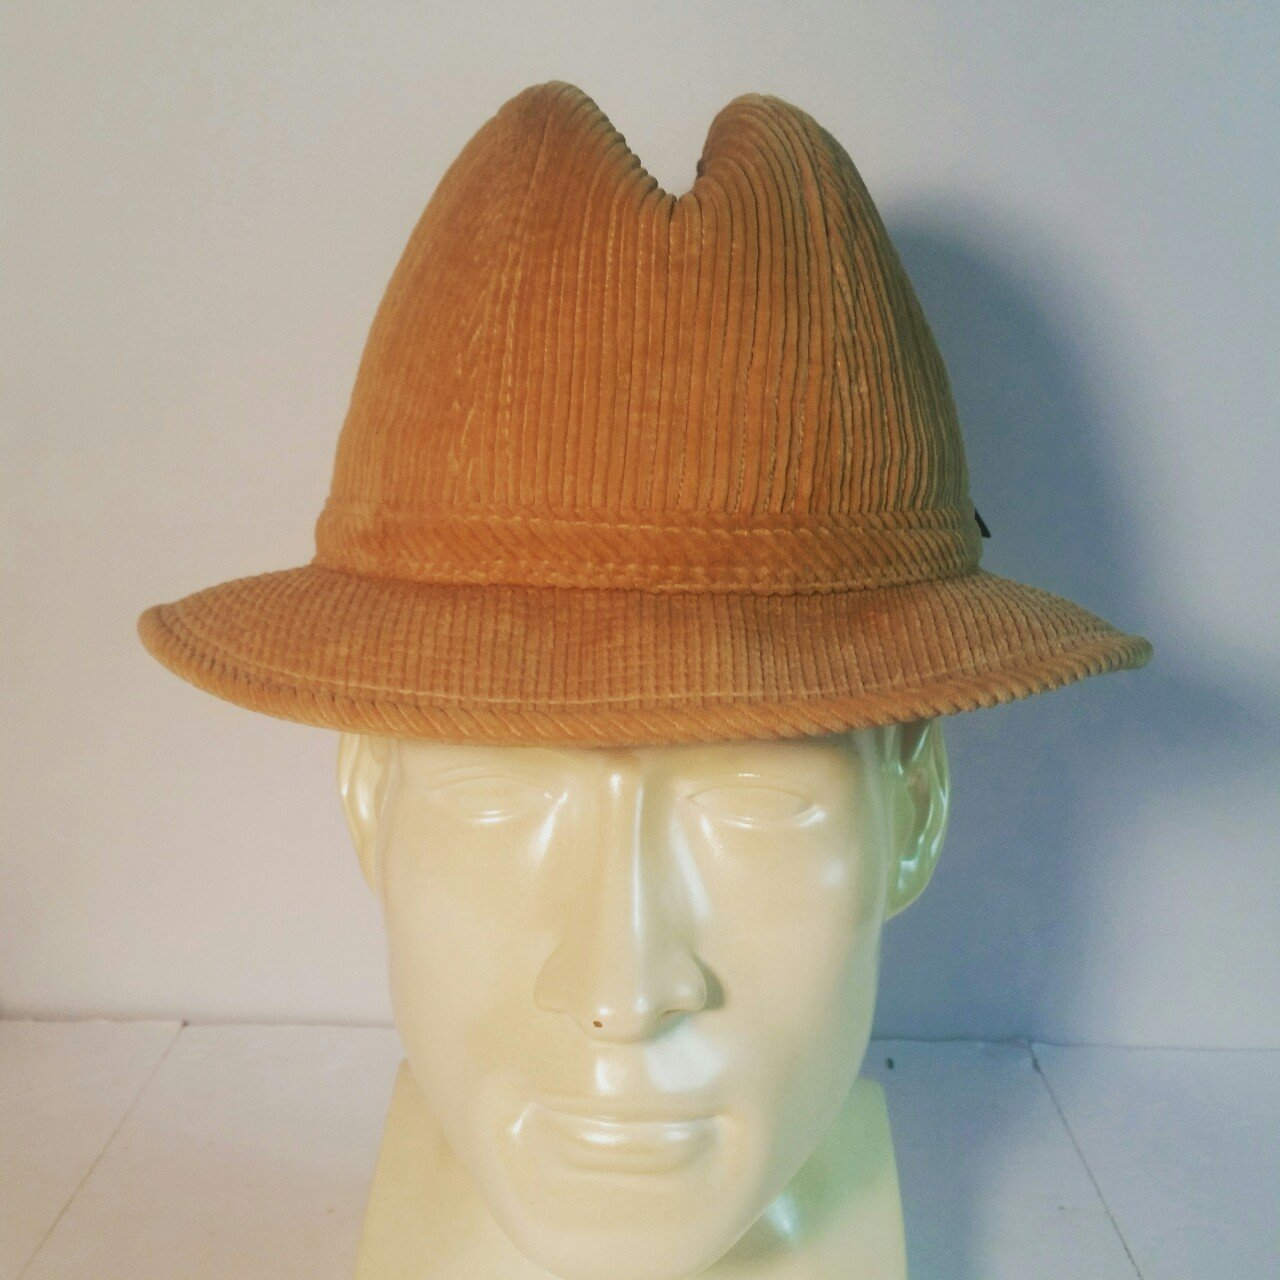 London Fog Fedora for Men Vintage 1980s. Brown Corduroy. - Depop f487ad86906